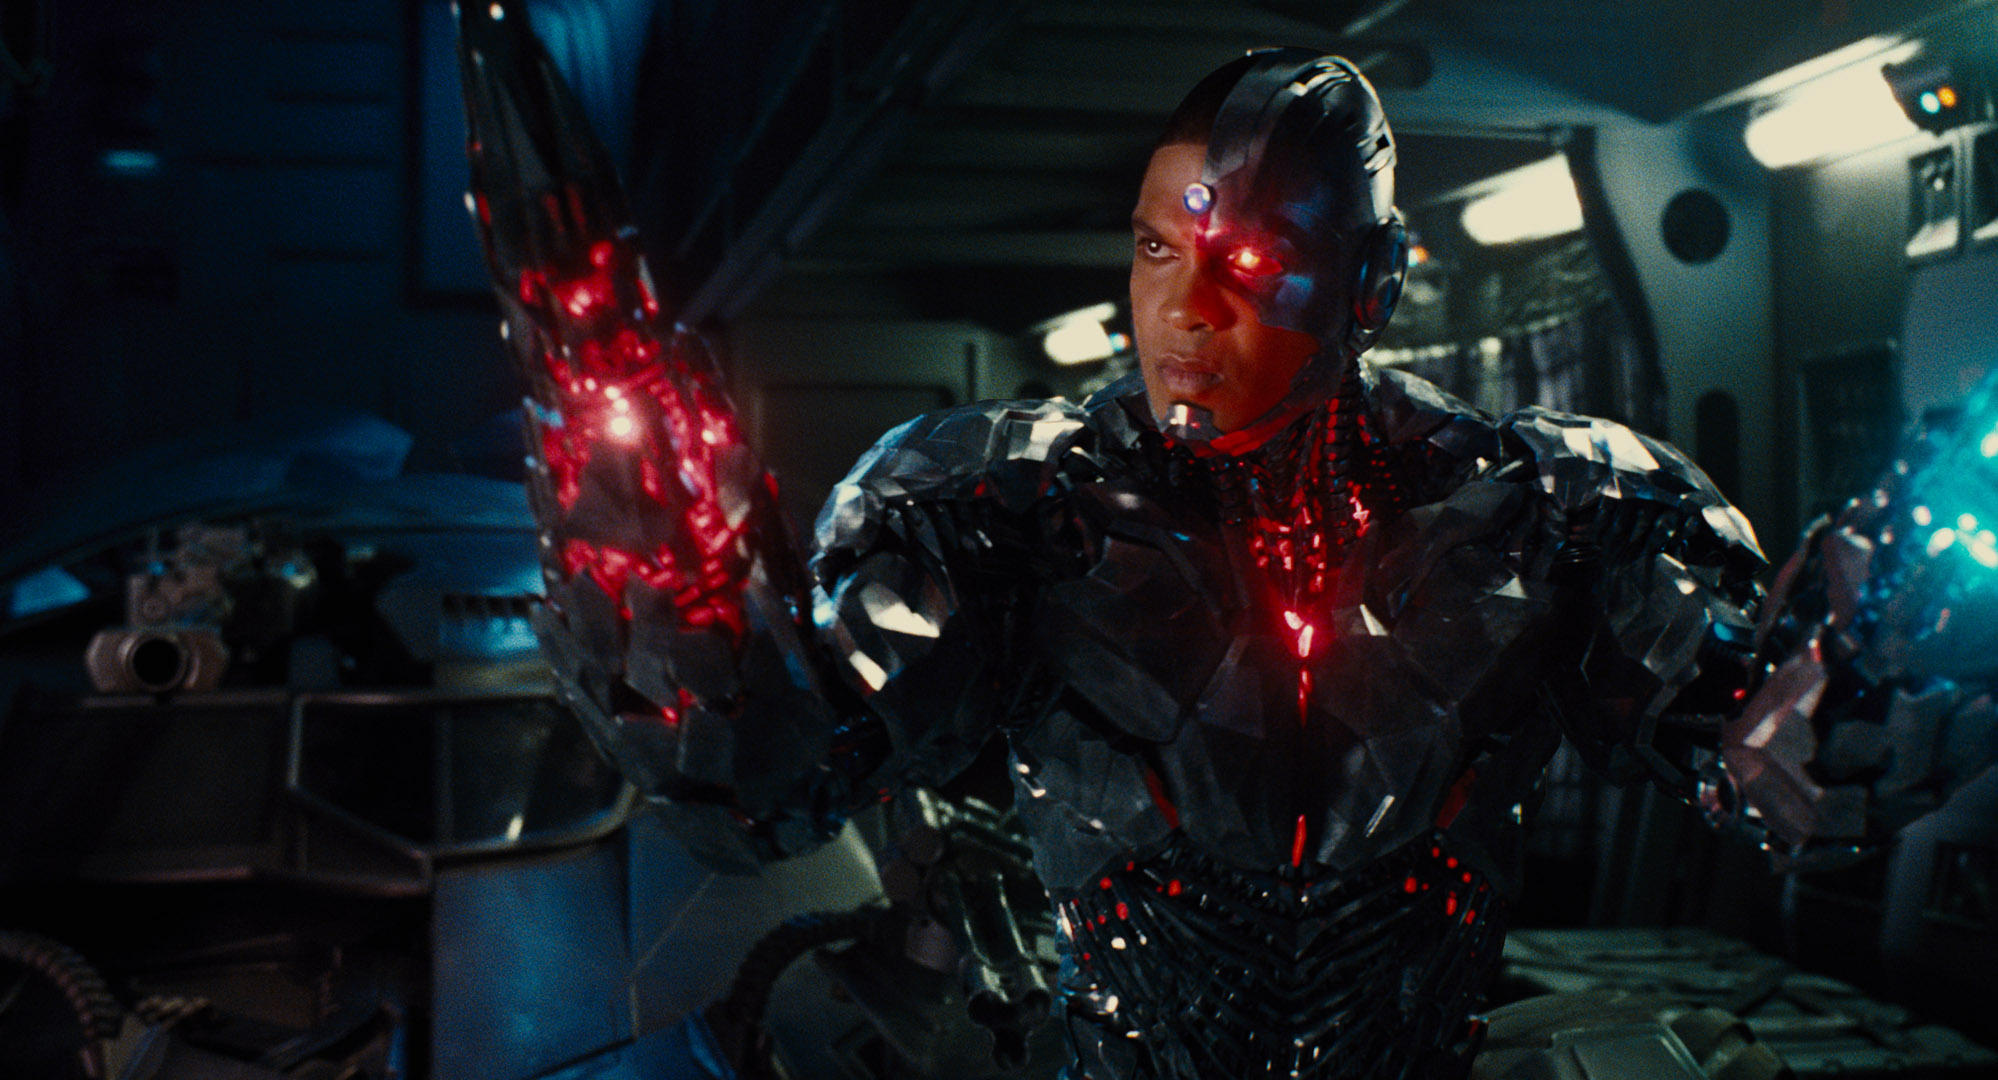 justice-league-dc-ray-fisher-cyborg